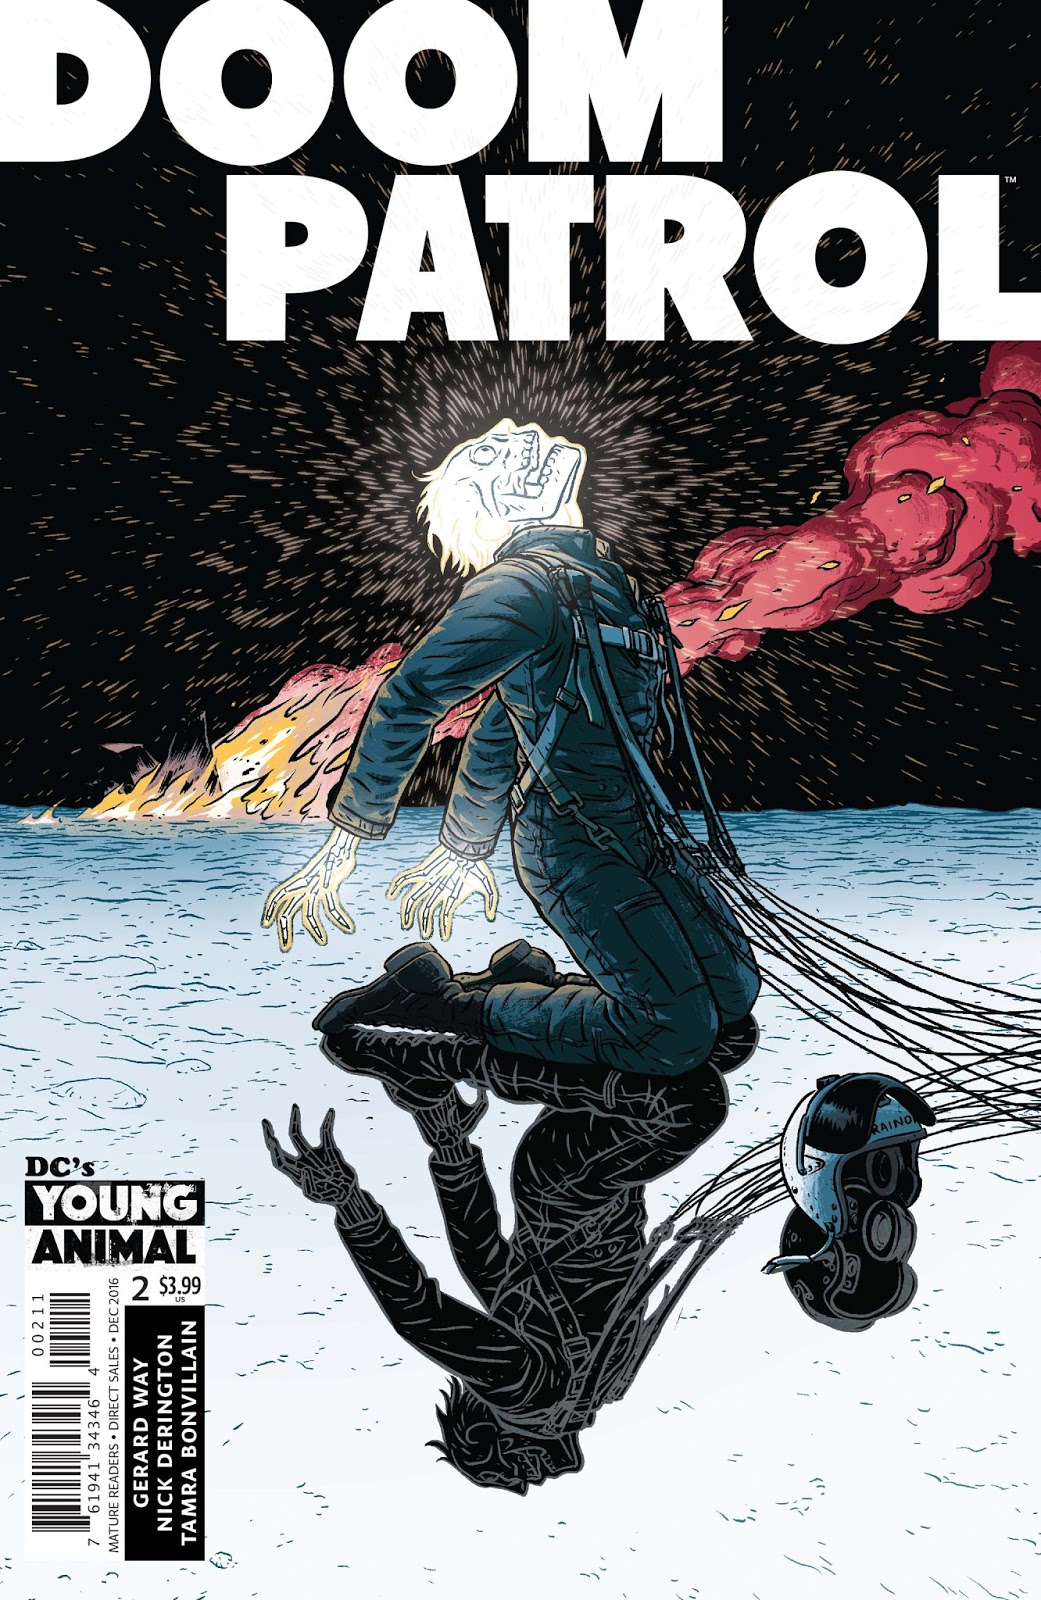 Weird Science Dc Comics Doom Patrol 2 Review And Spoilers Well , after taking a break from aatrox , i played some of him recently. weird science dc comics doom patrol 2